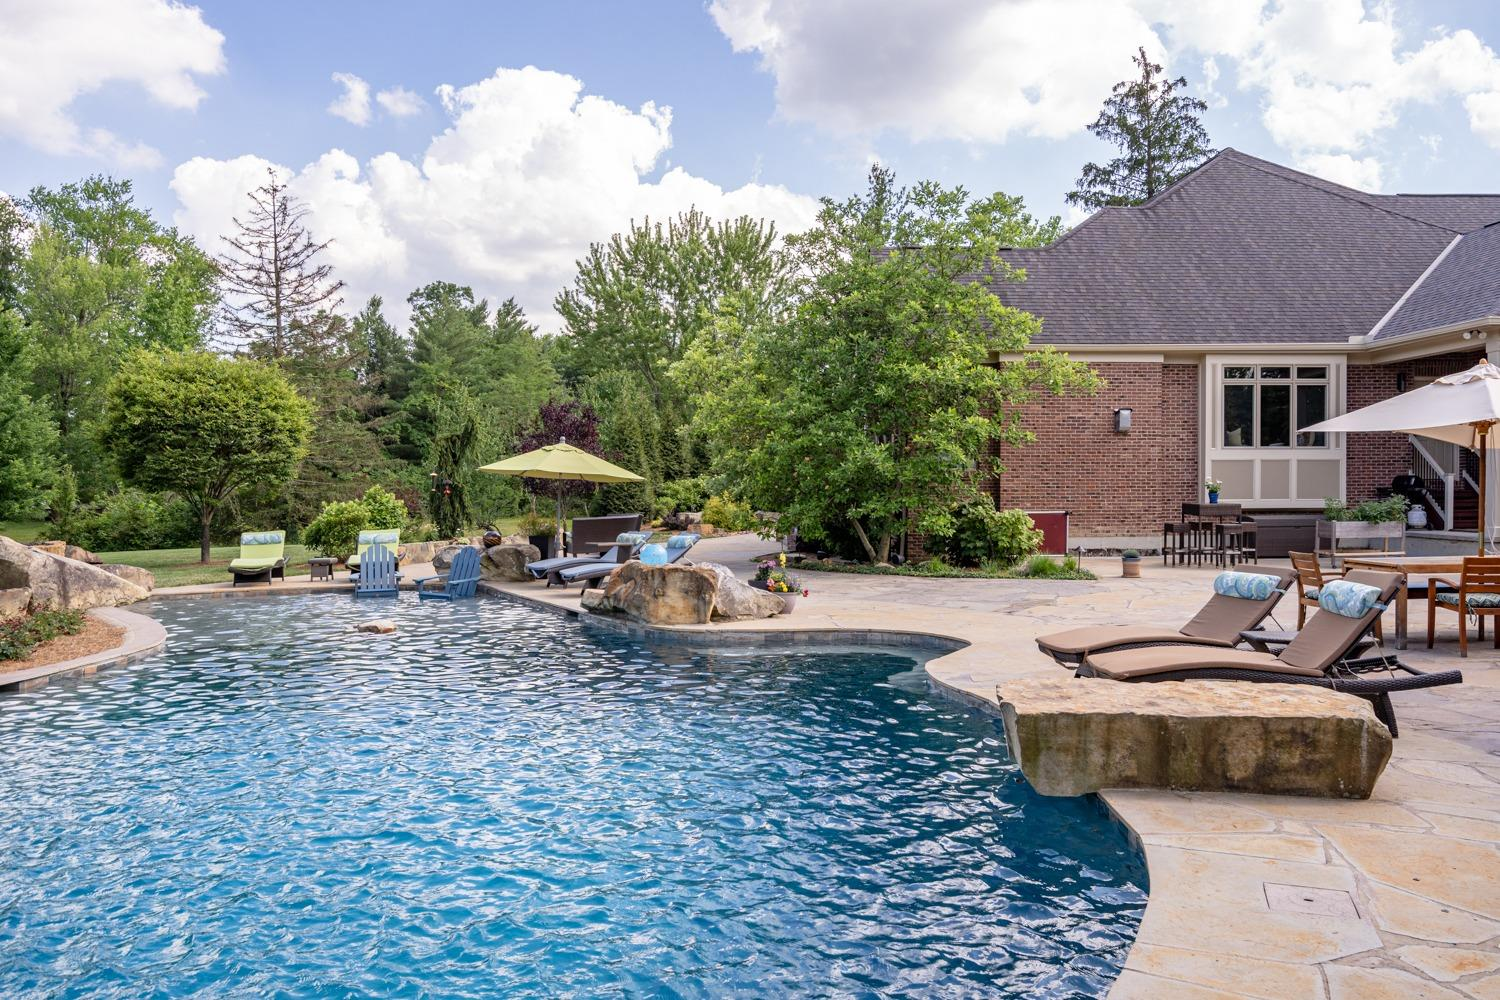 Relax with your feet in the water on the custom rock ledges.